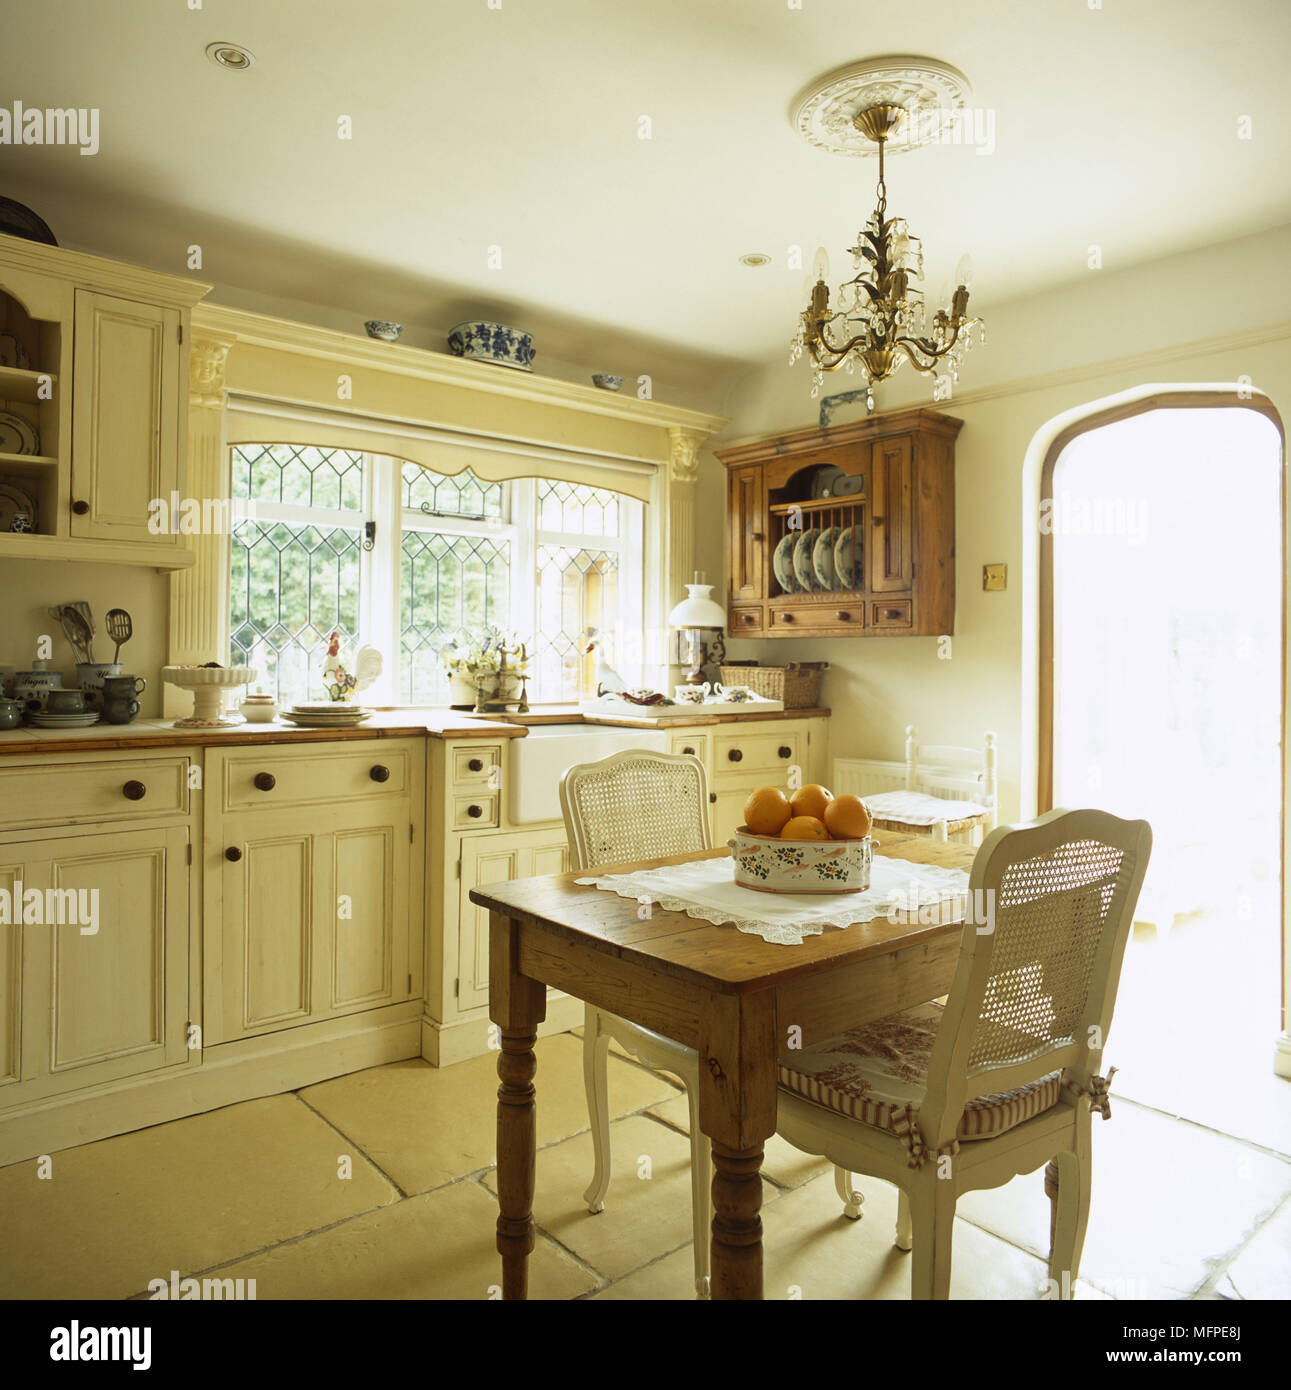 A Traditional Kitchen With A Flagstone Floor And A Small Dining